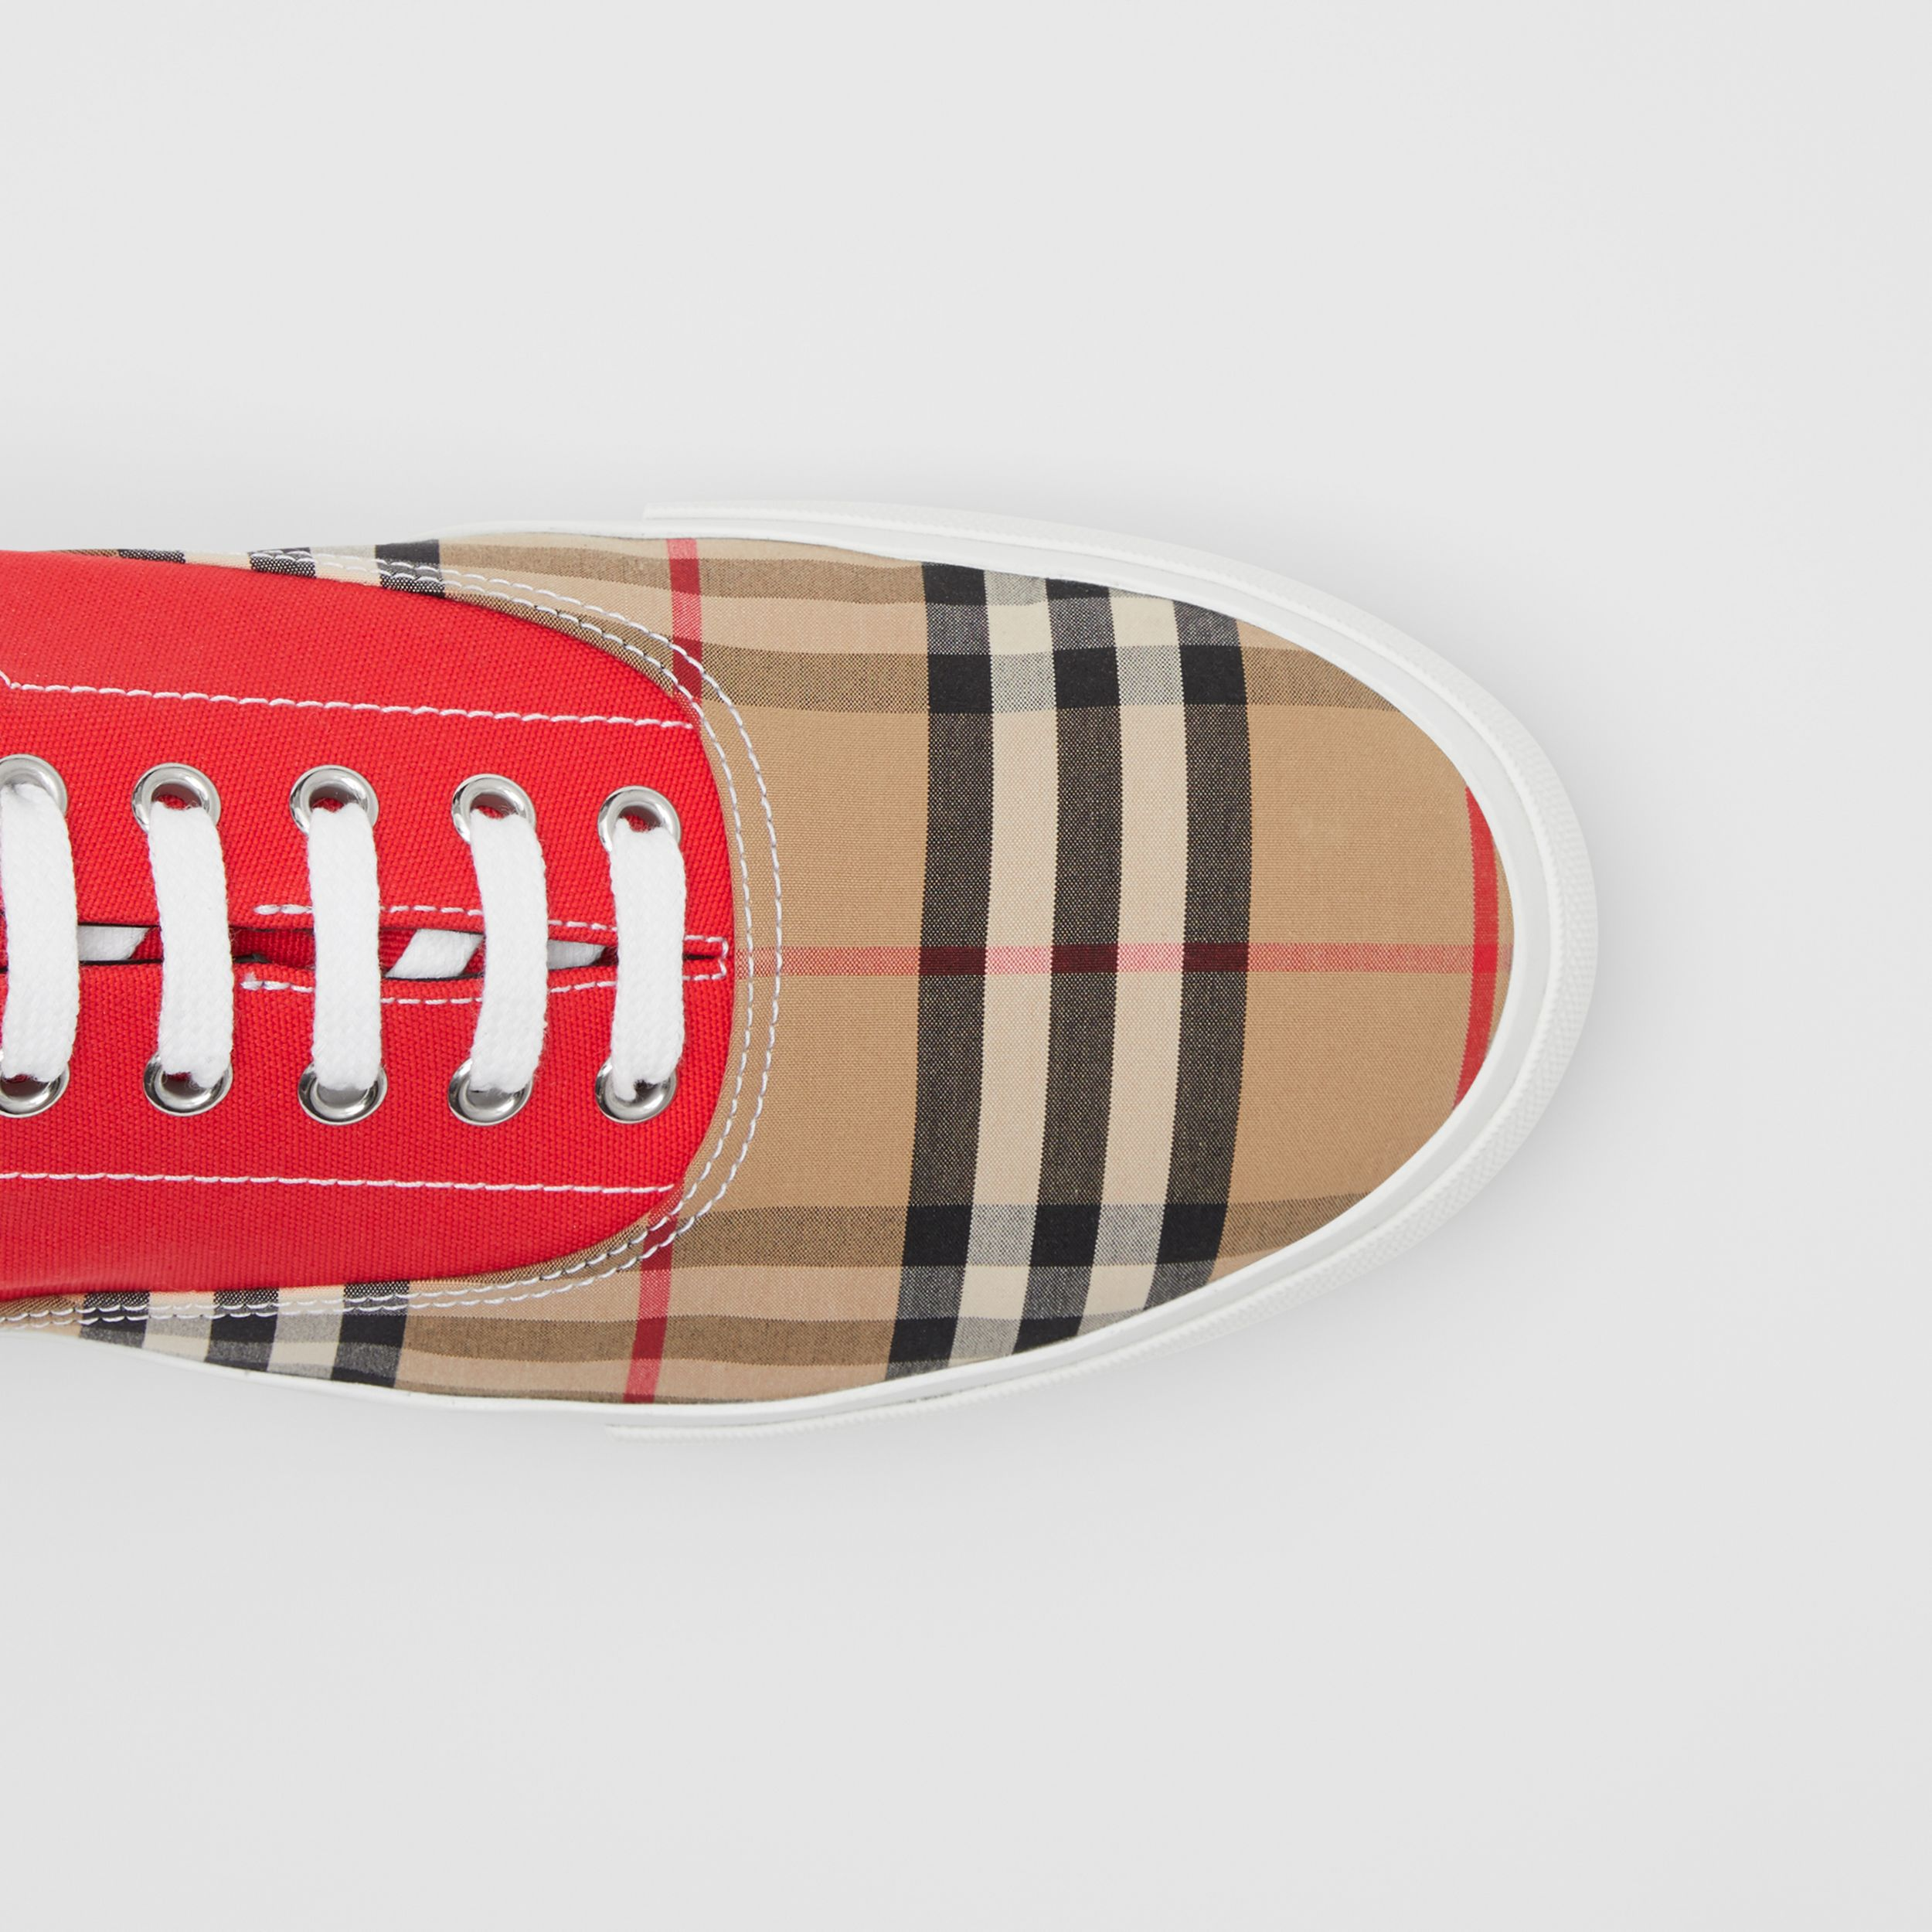 Vintage Check, Cotton Canvas and Suede Sneakers in Archive Beige/red - Men | Burberry - 2